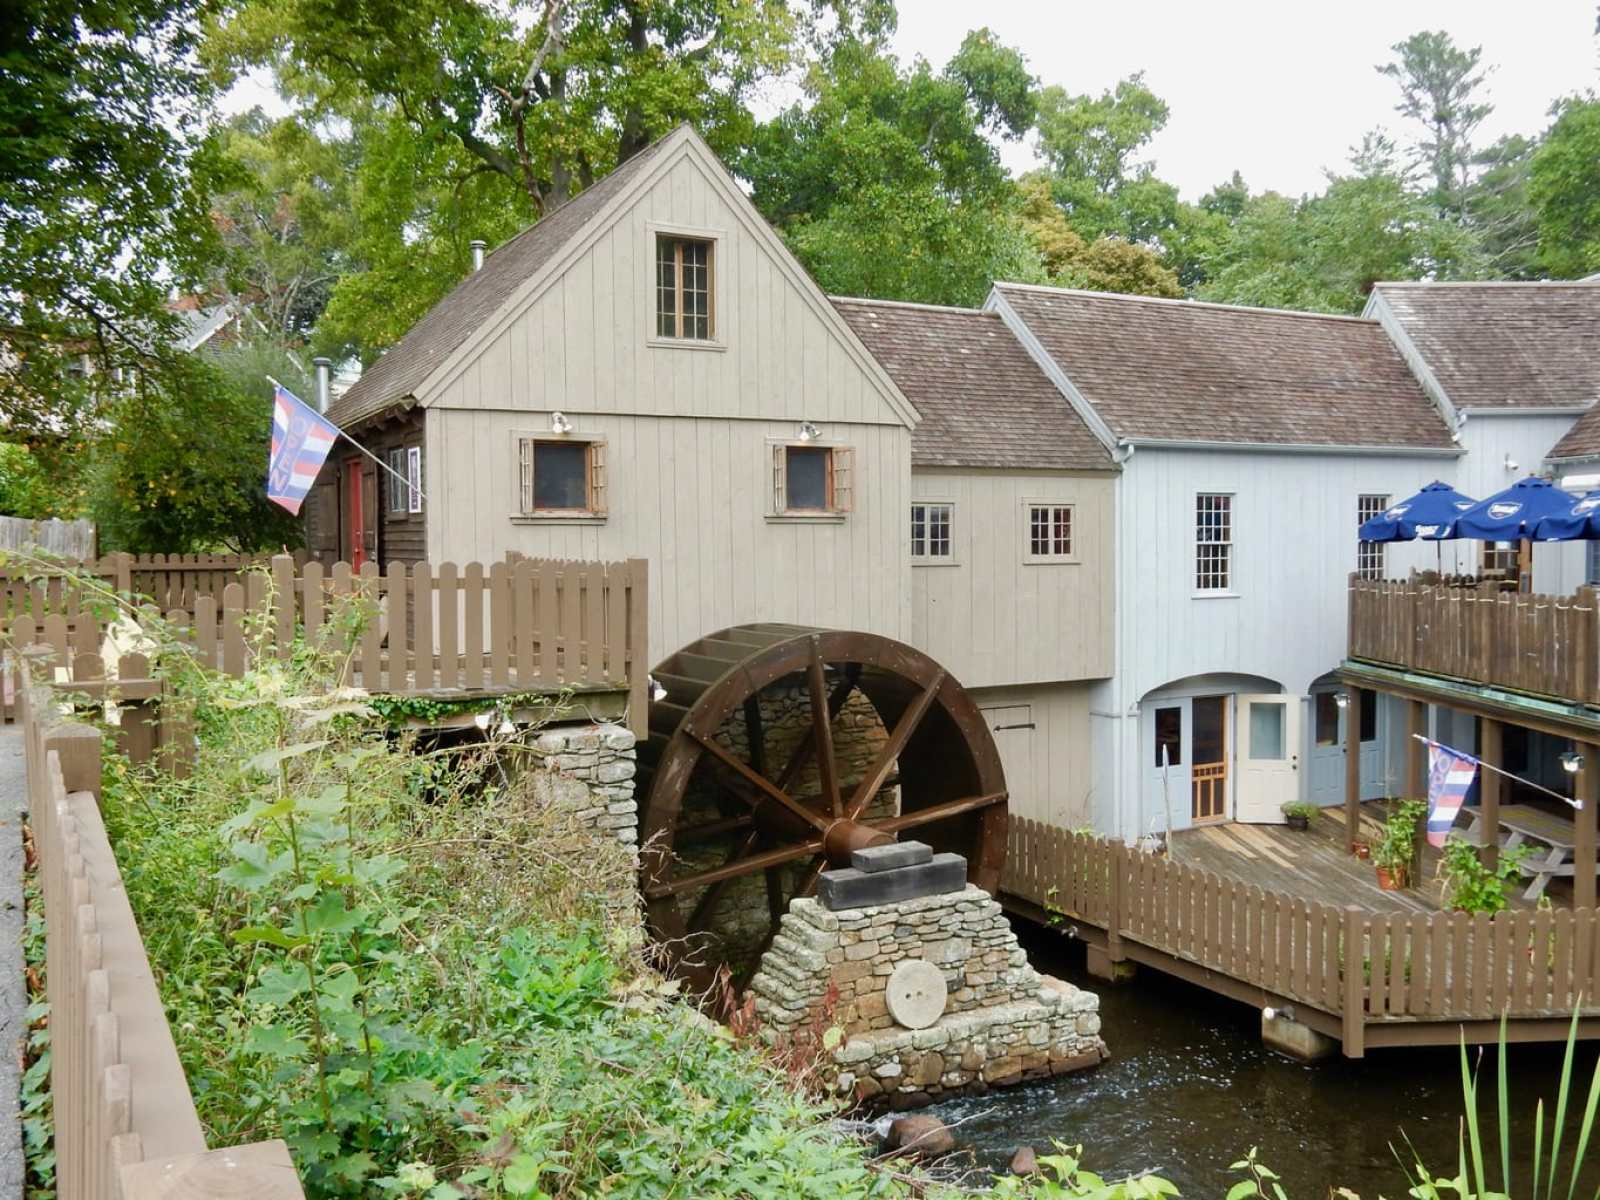 Plimoth Grist Mill, Plymouth MA